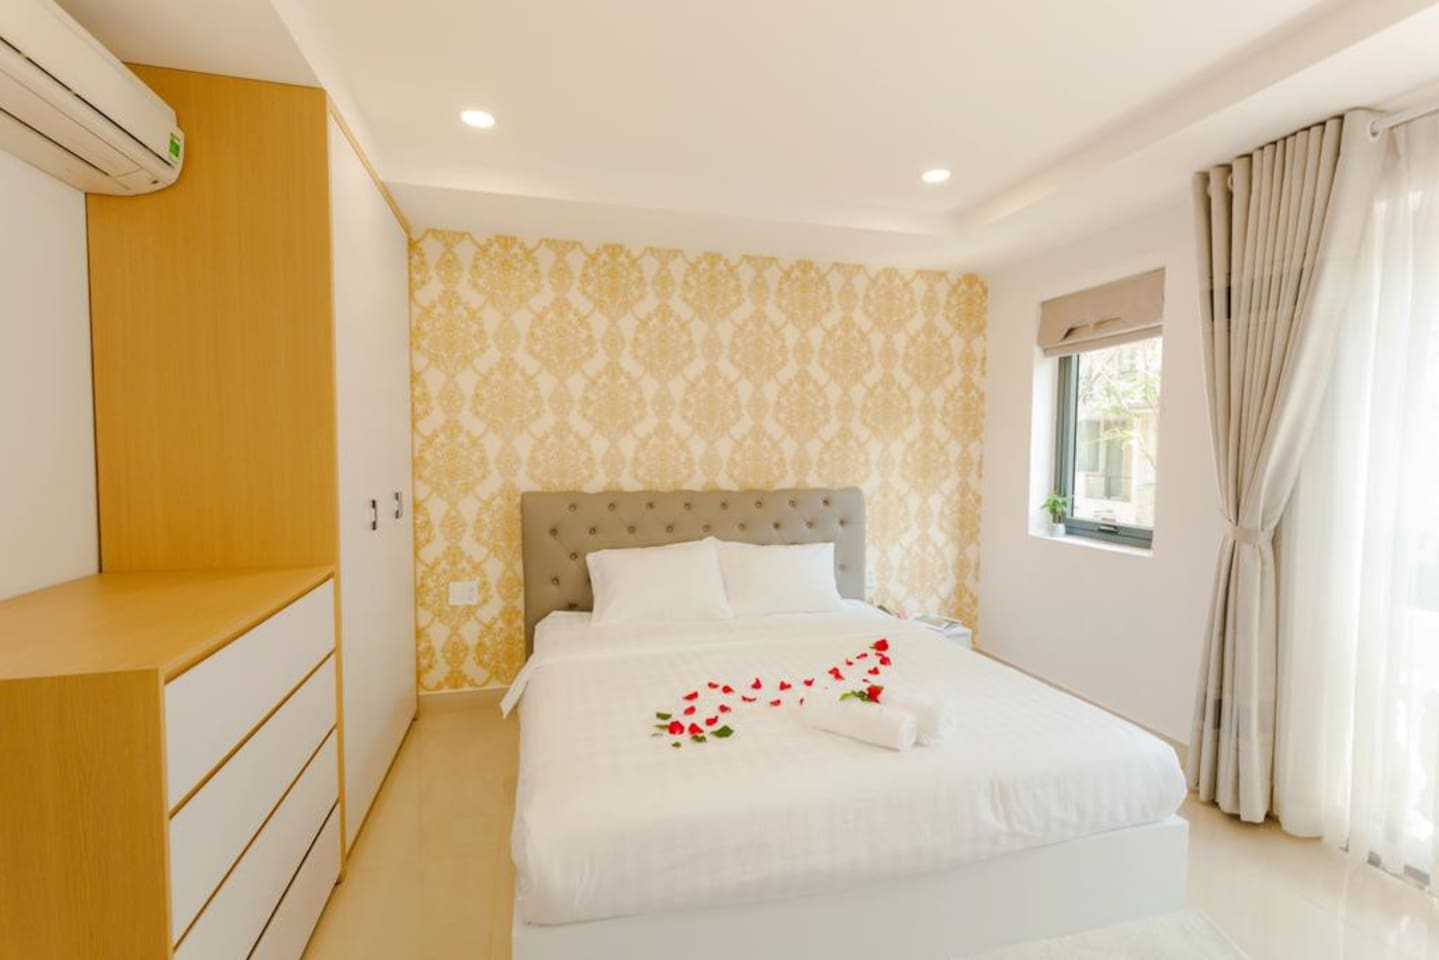 Deluxe room with nice street view